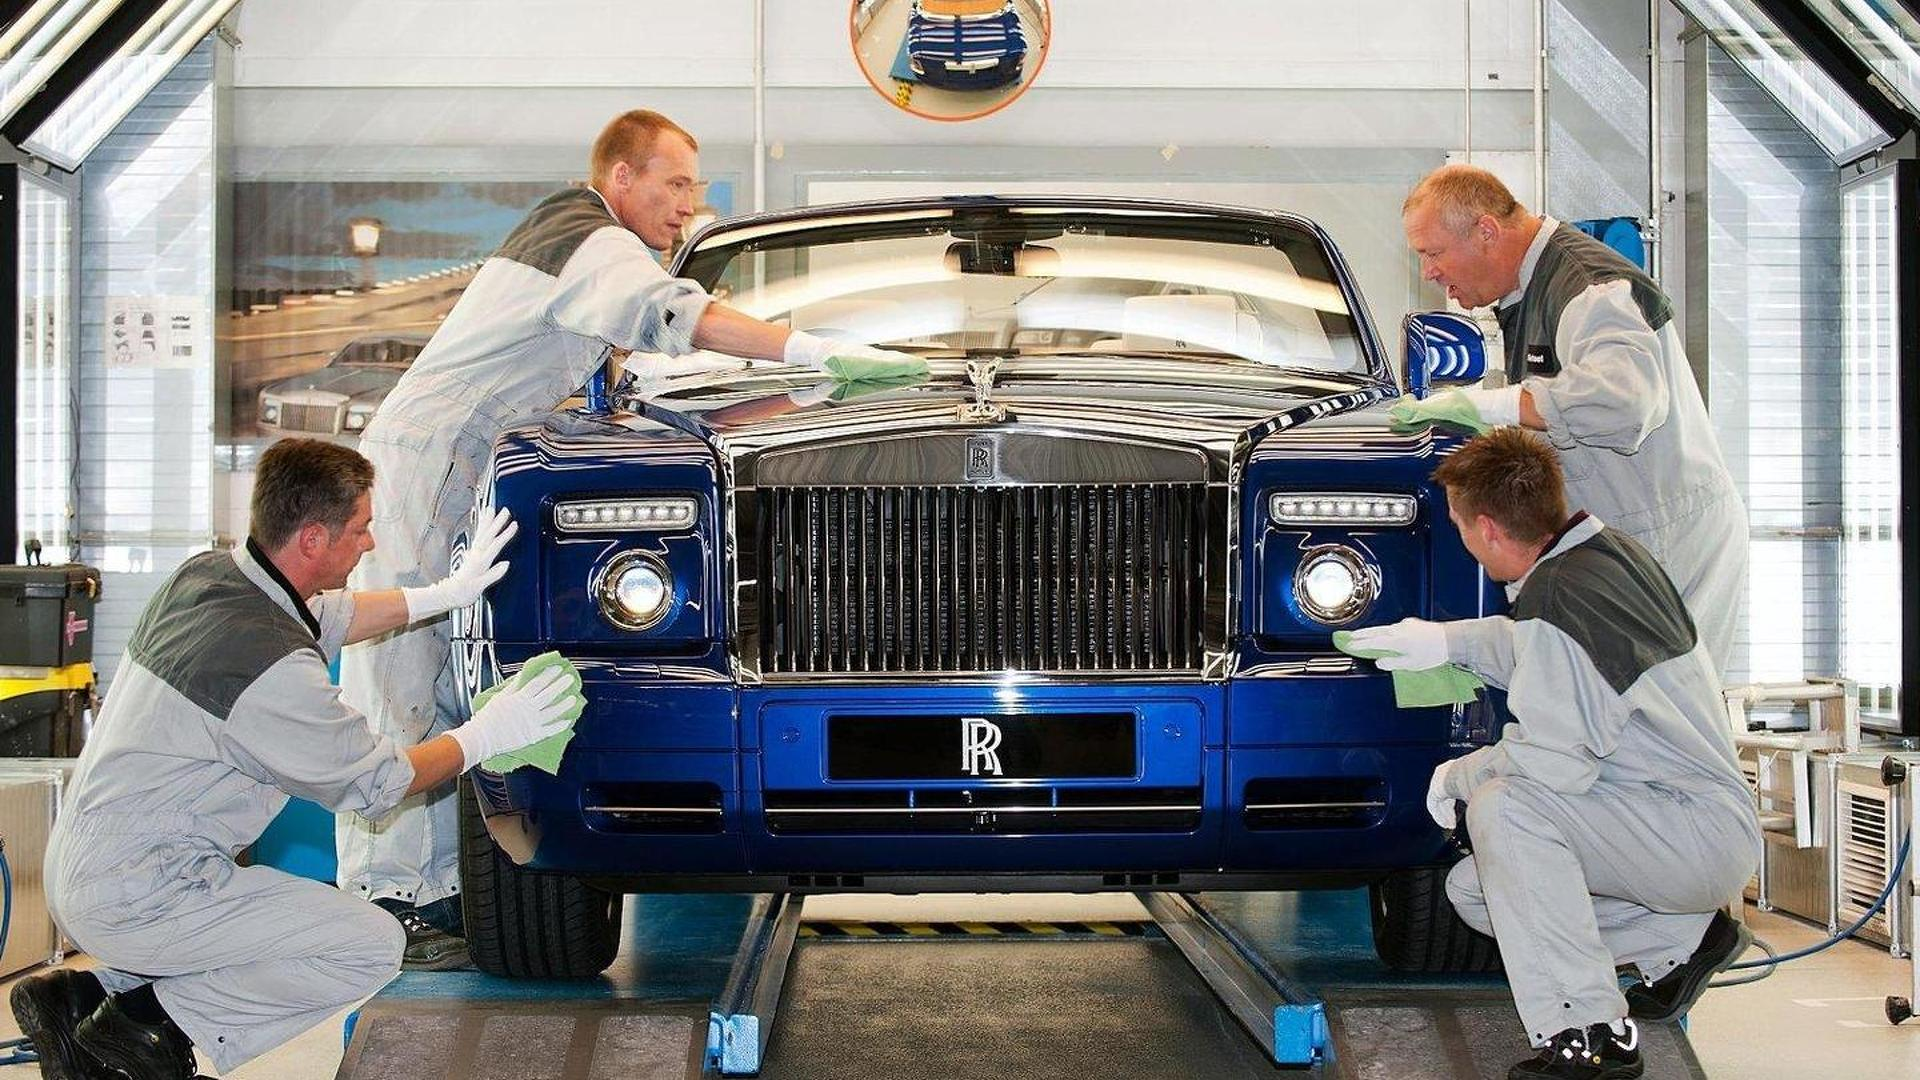 One-off Rolls-Royce Phantom Drophead Coupé presented at Masterpiece London 2011